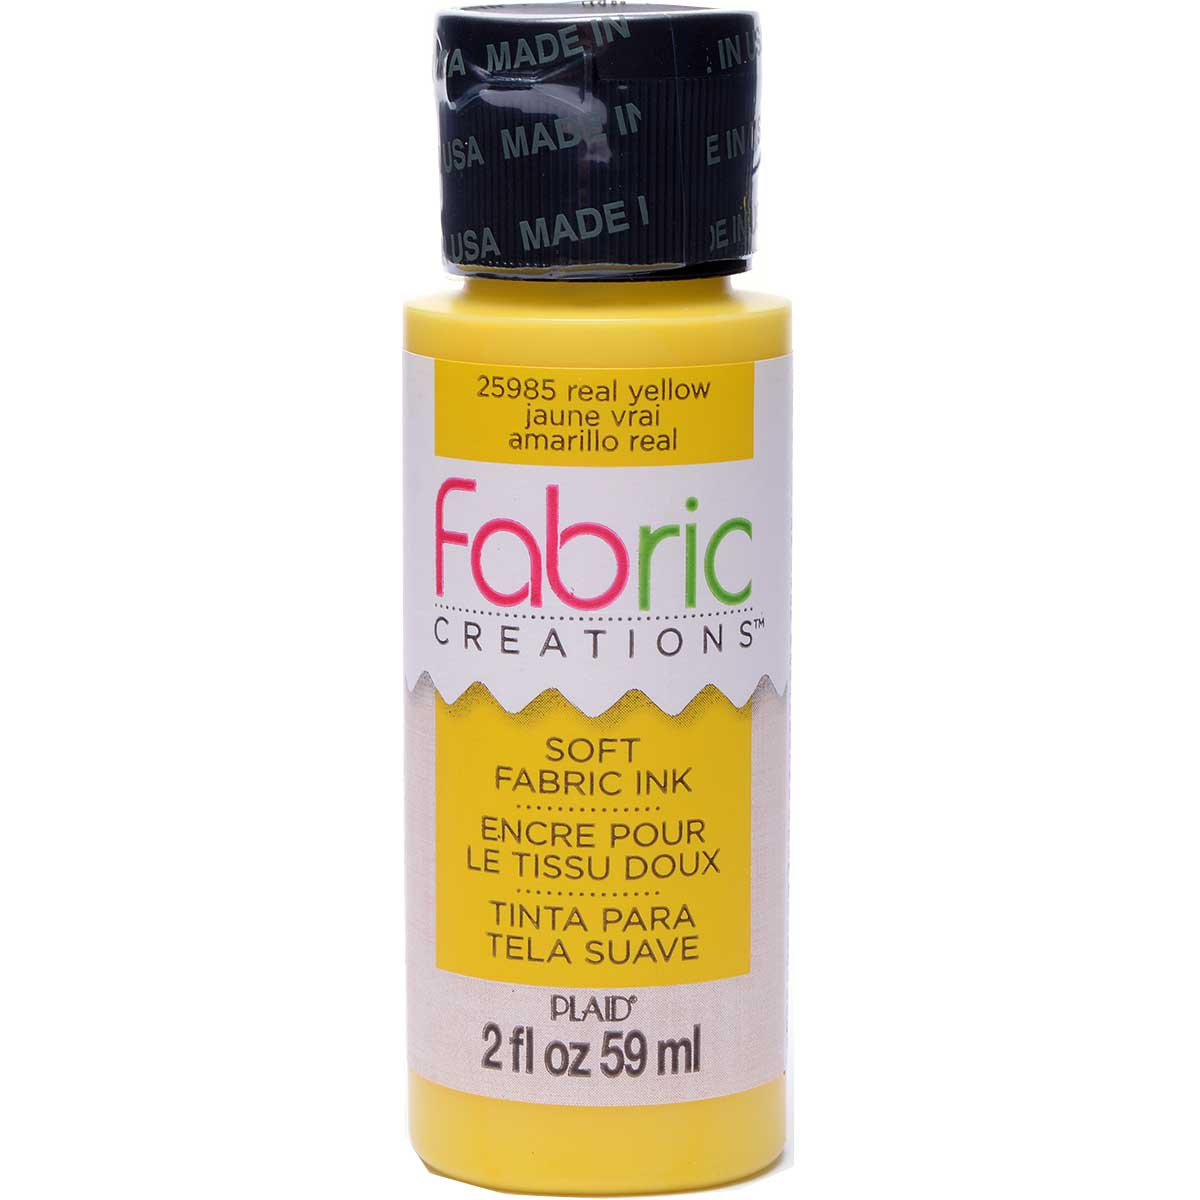 Fabric Creations™ Soft Fabric Inks - Real Yellow, 2 oz. - 25985